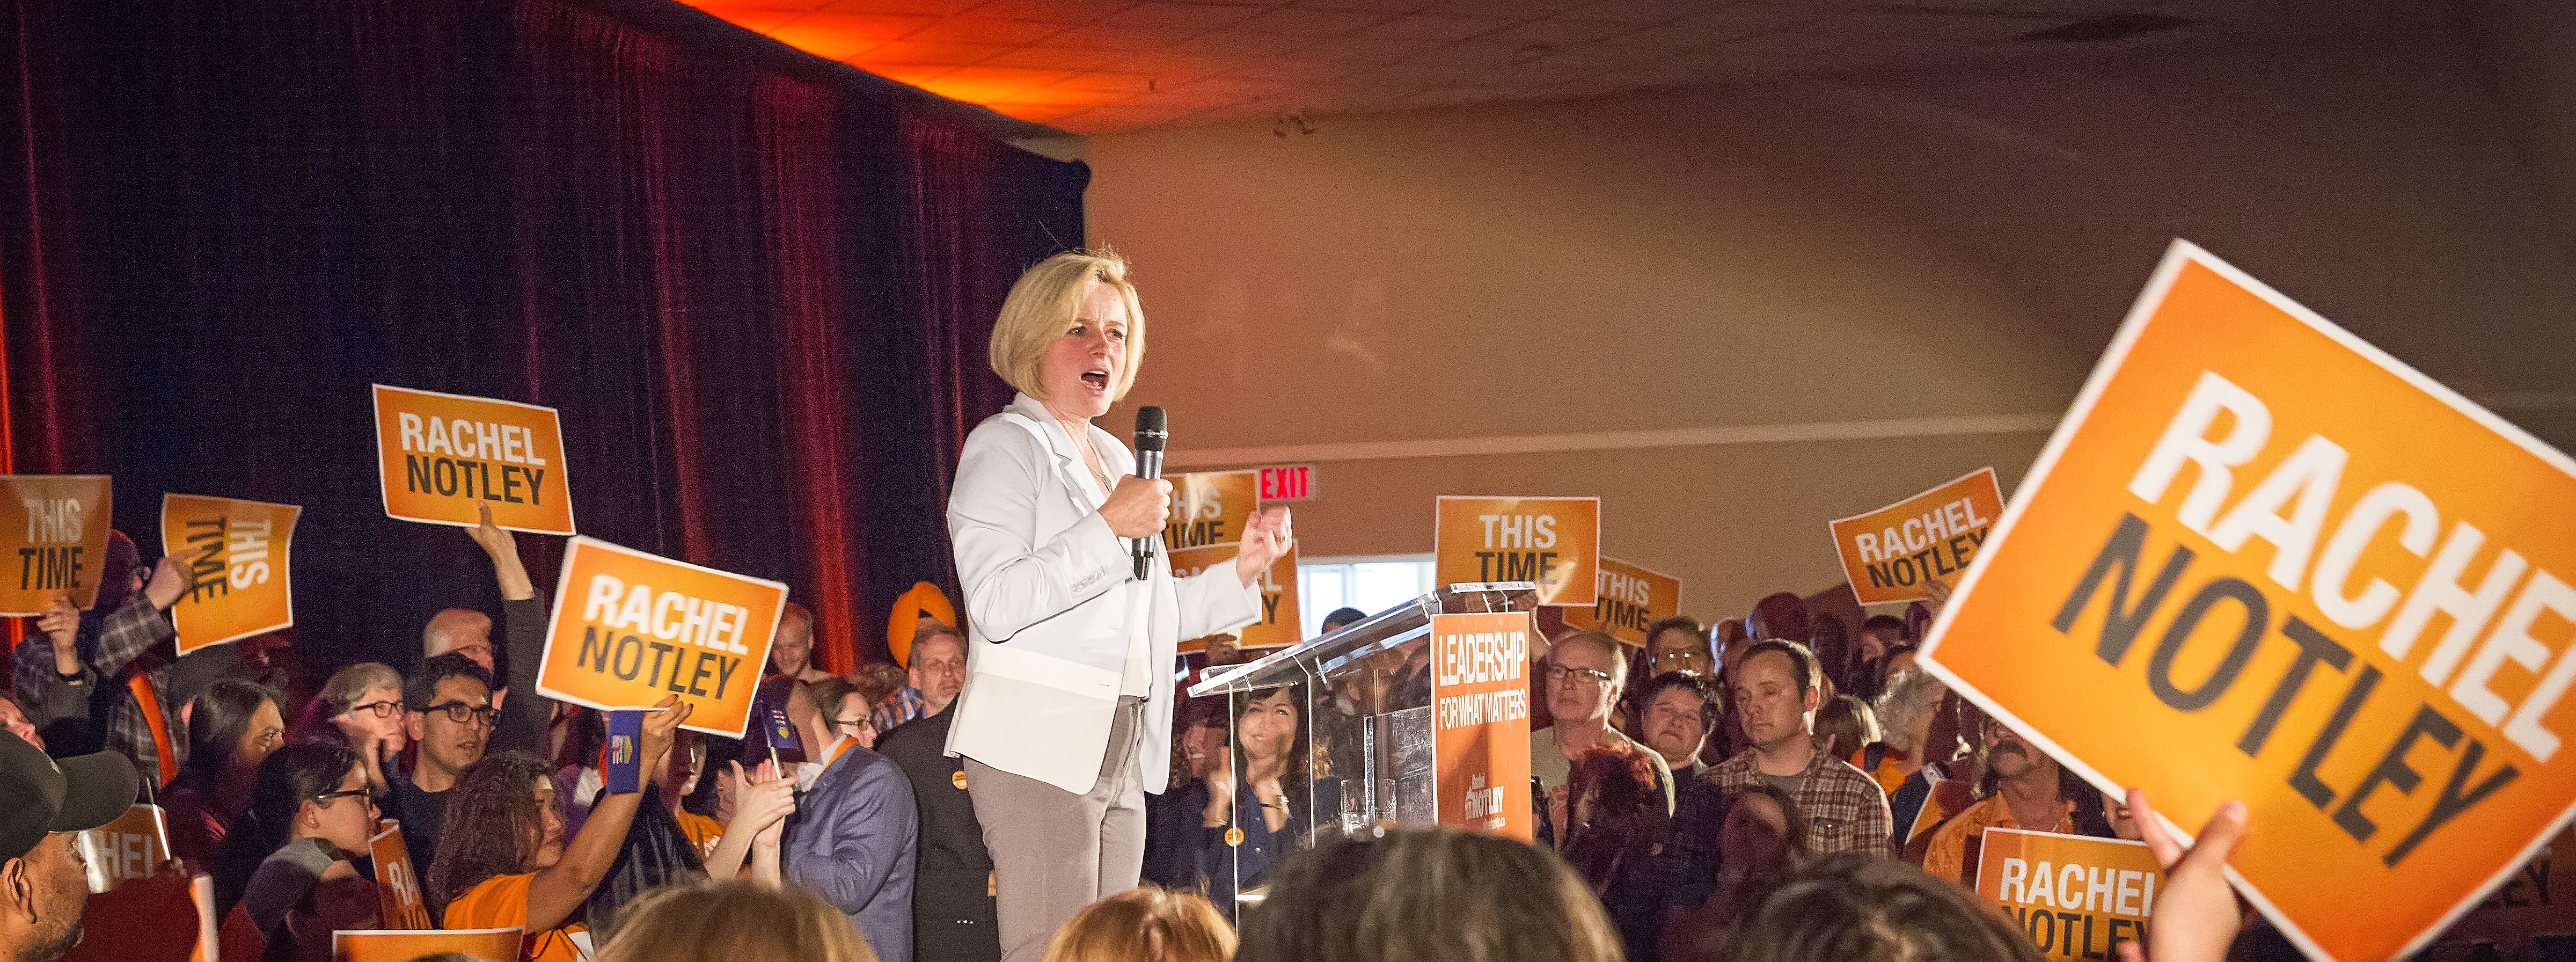 Rachel Notley rallies the Alberta NDP